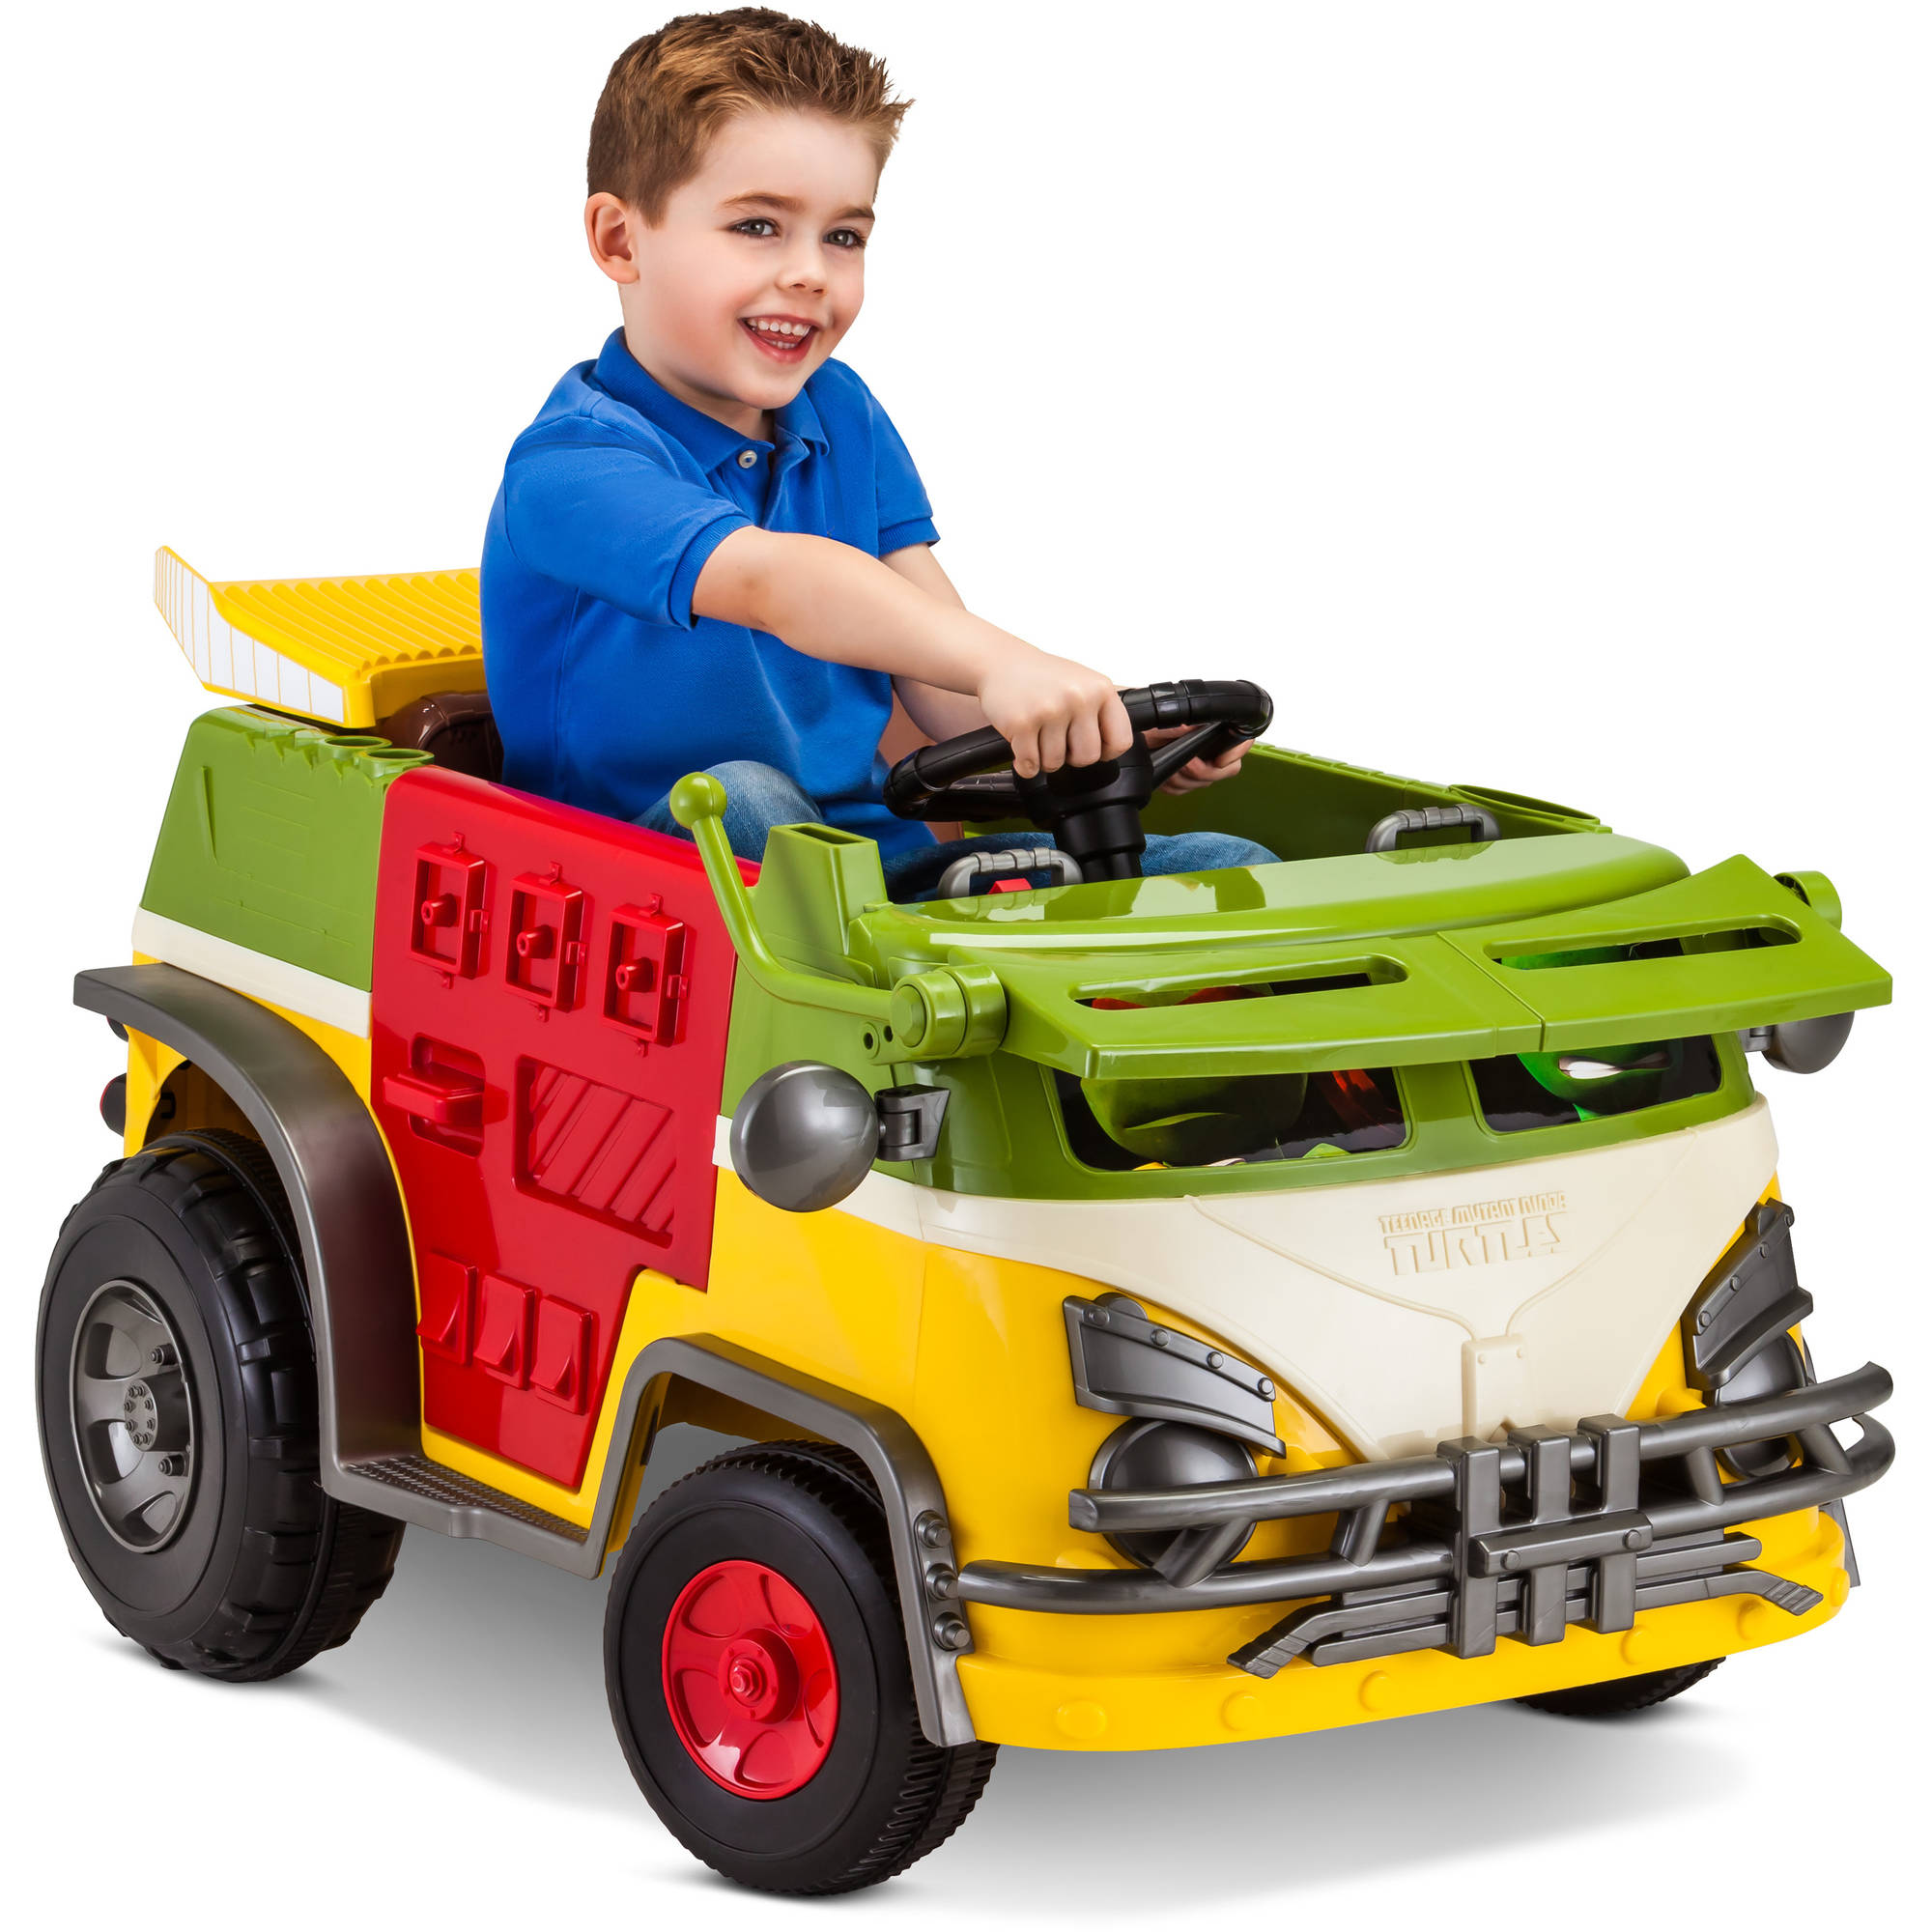 For Boys Toy Cars To Ride In : Teenage mutant ninja turtles v powered ride on